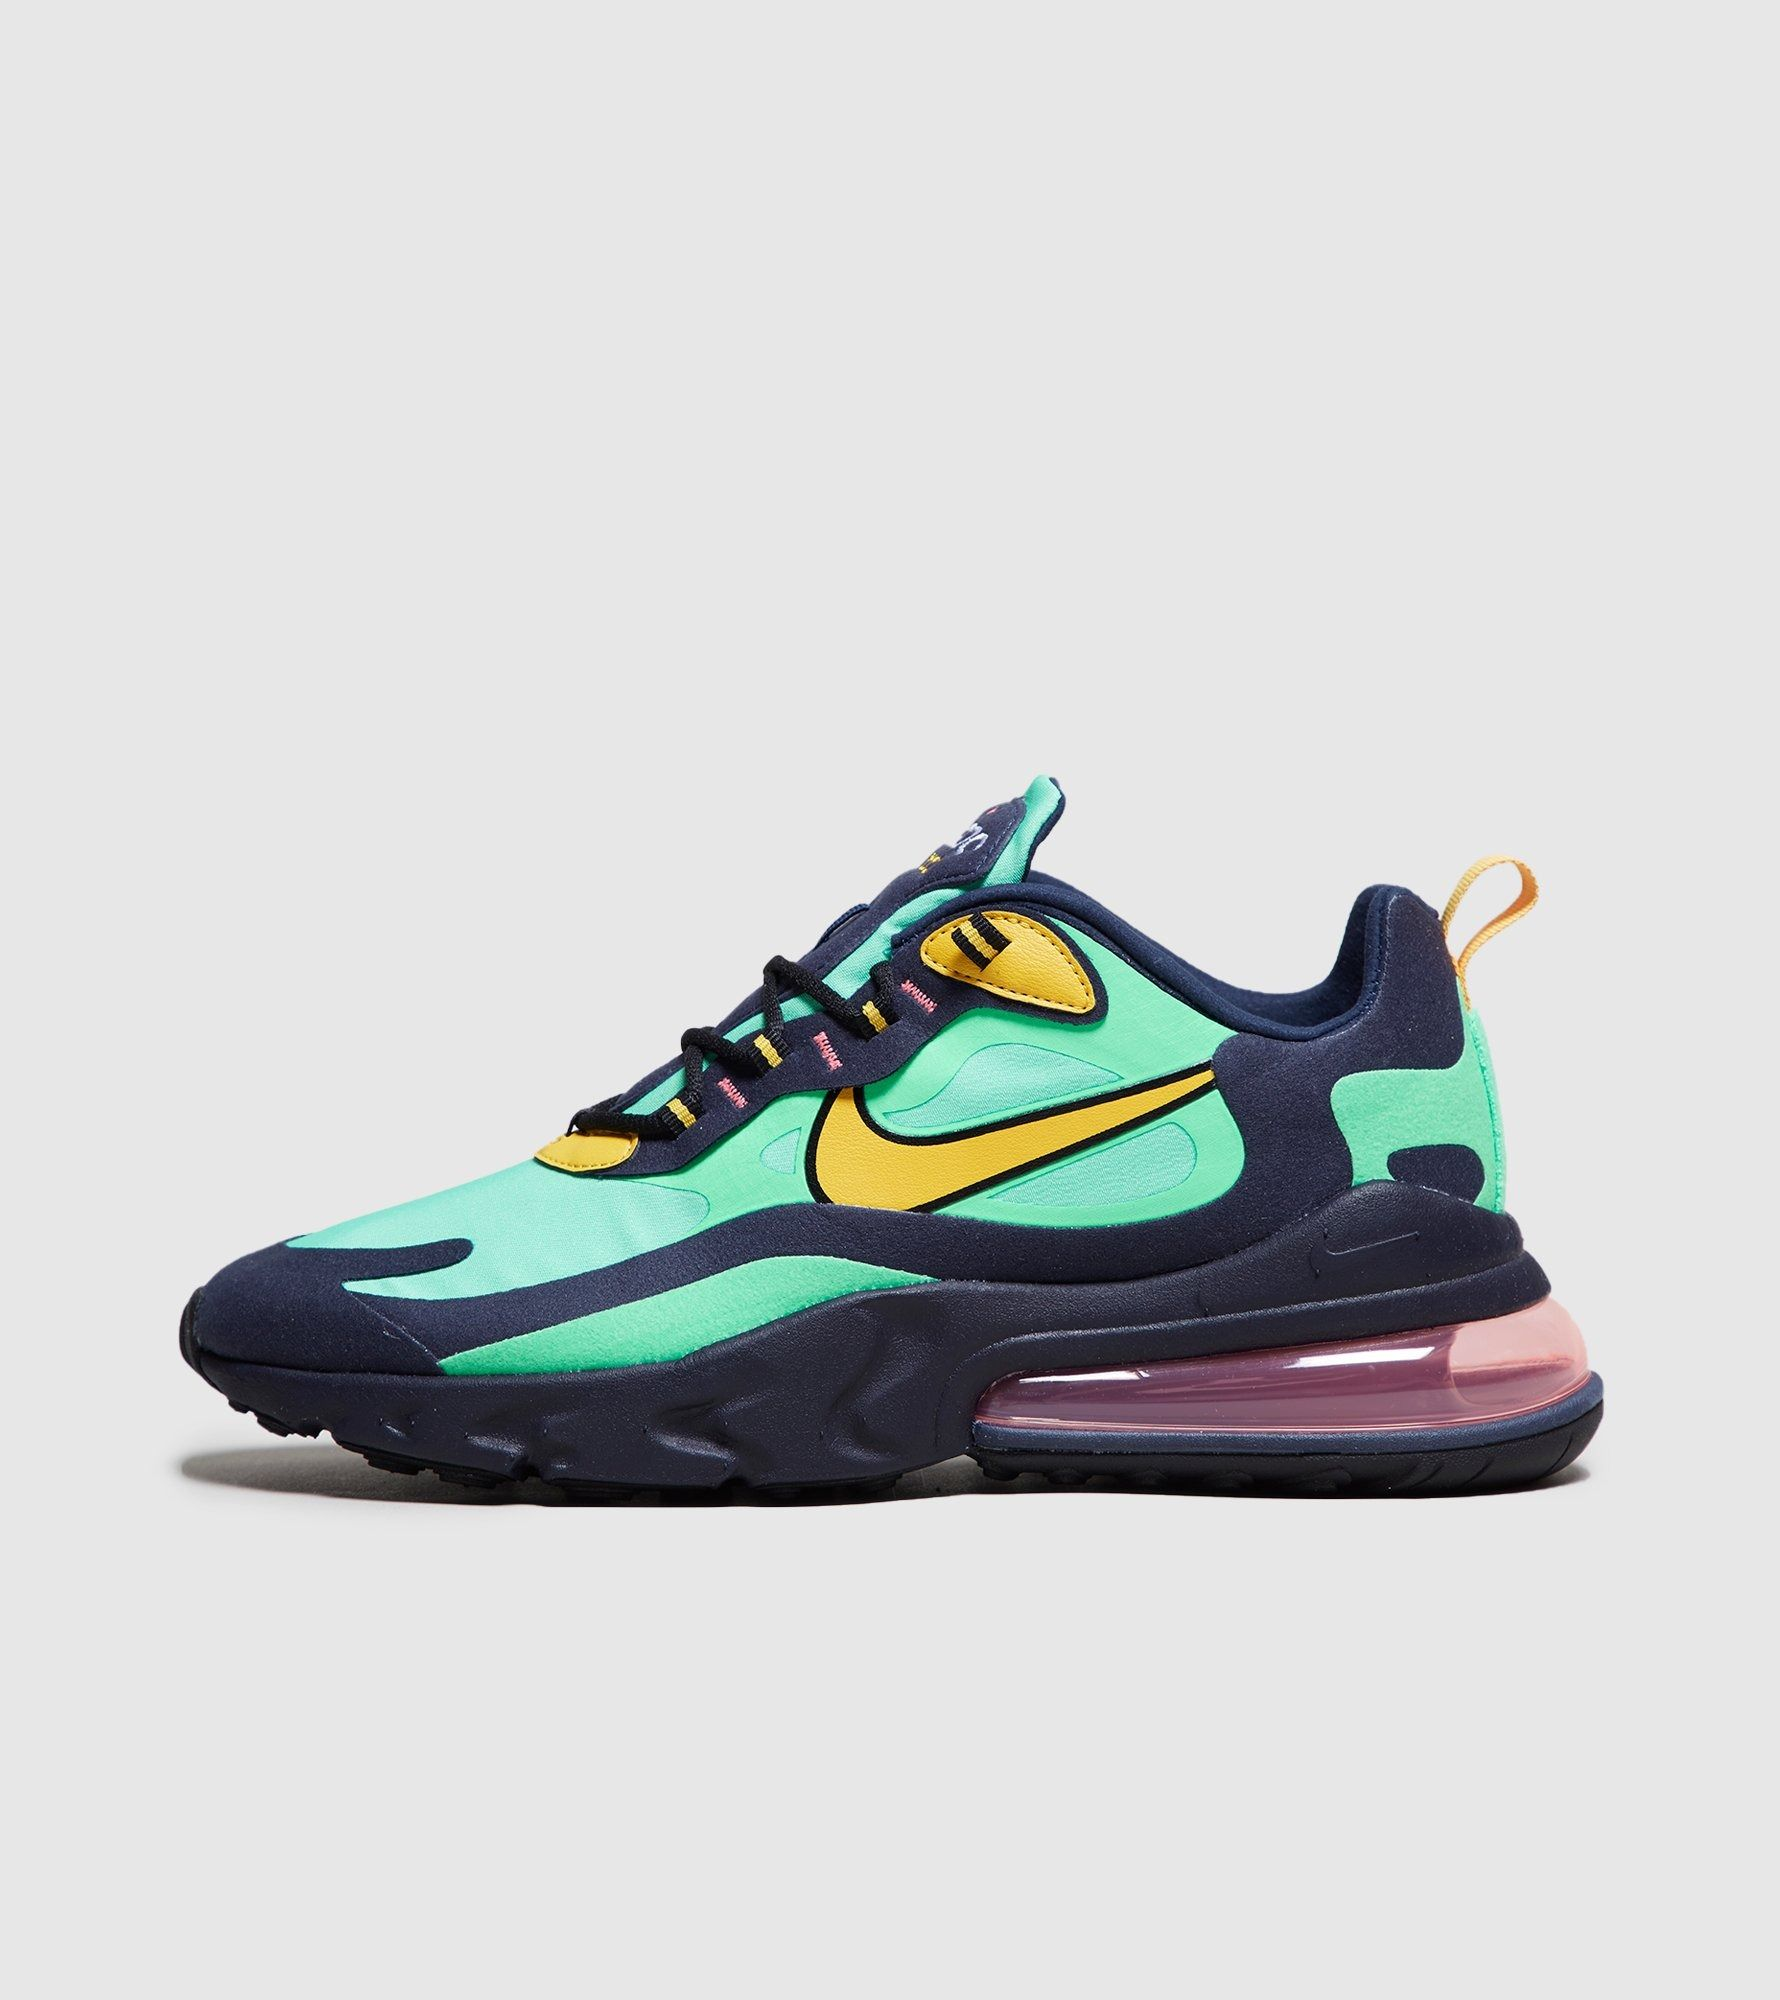 Nike Air Max 270 React find out more on our site. Find